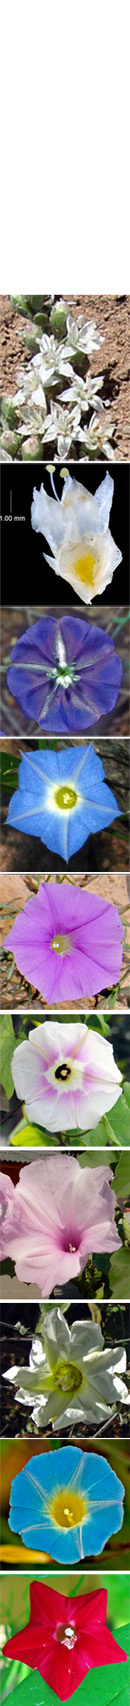 20612 Convolv banner2 - Convolvulaceae (morning glories) of Sonora, Mexico